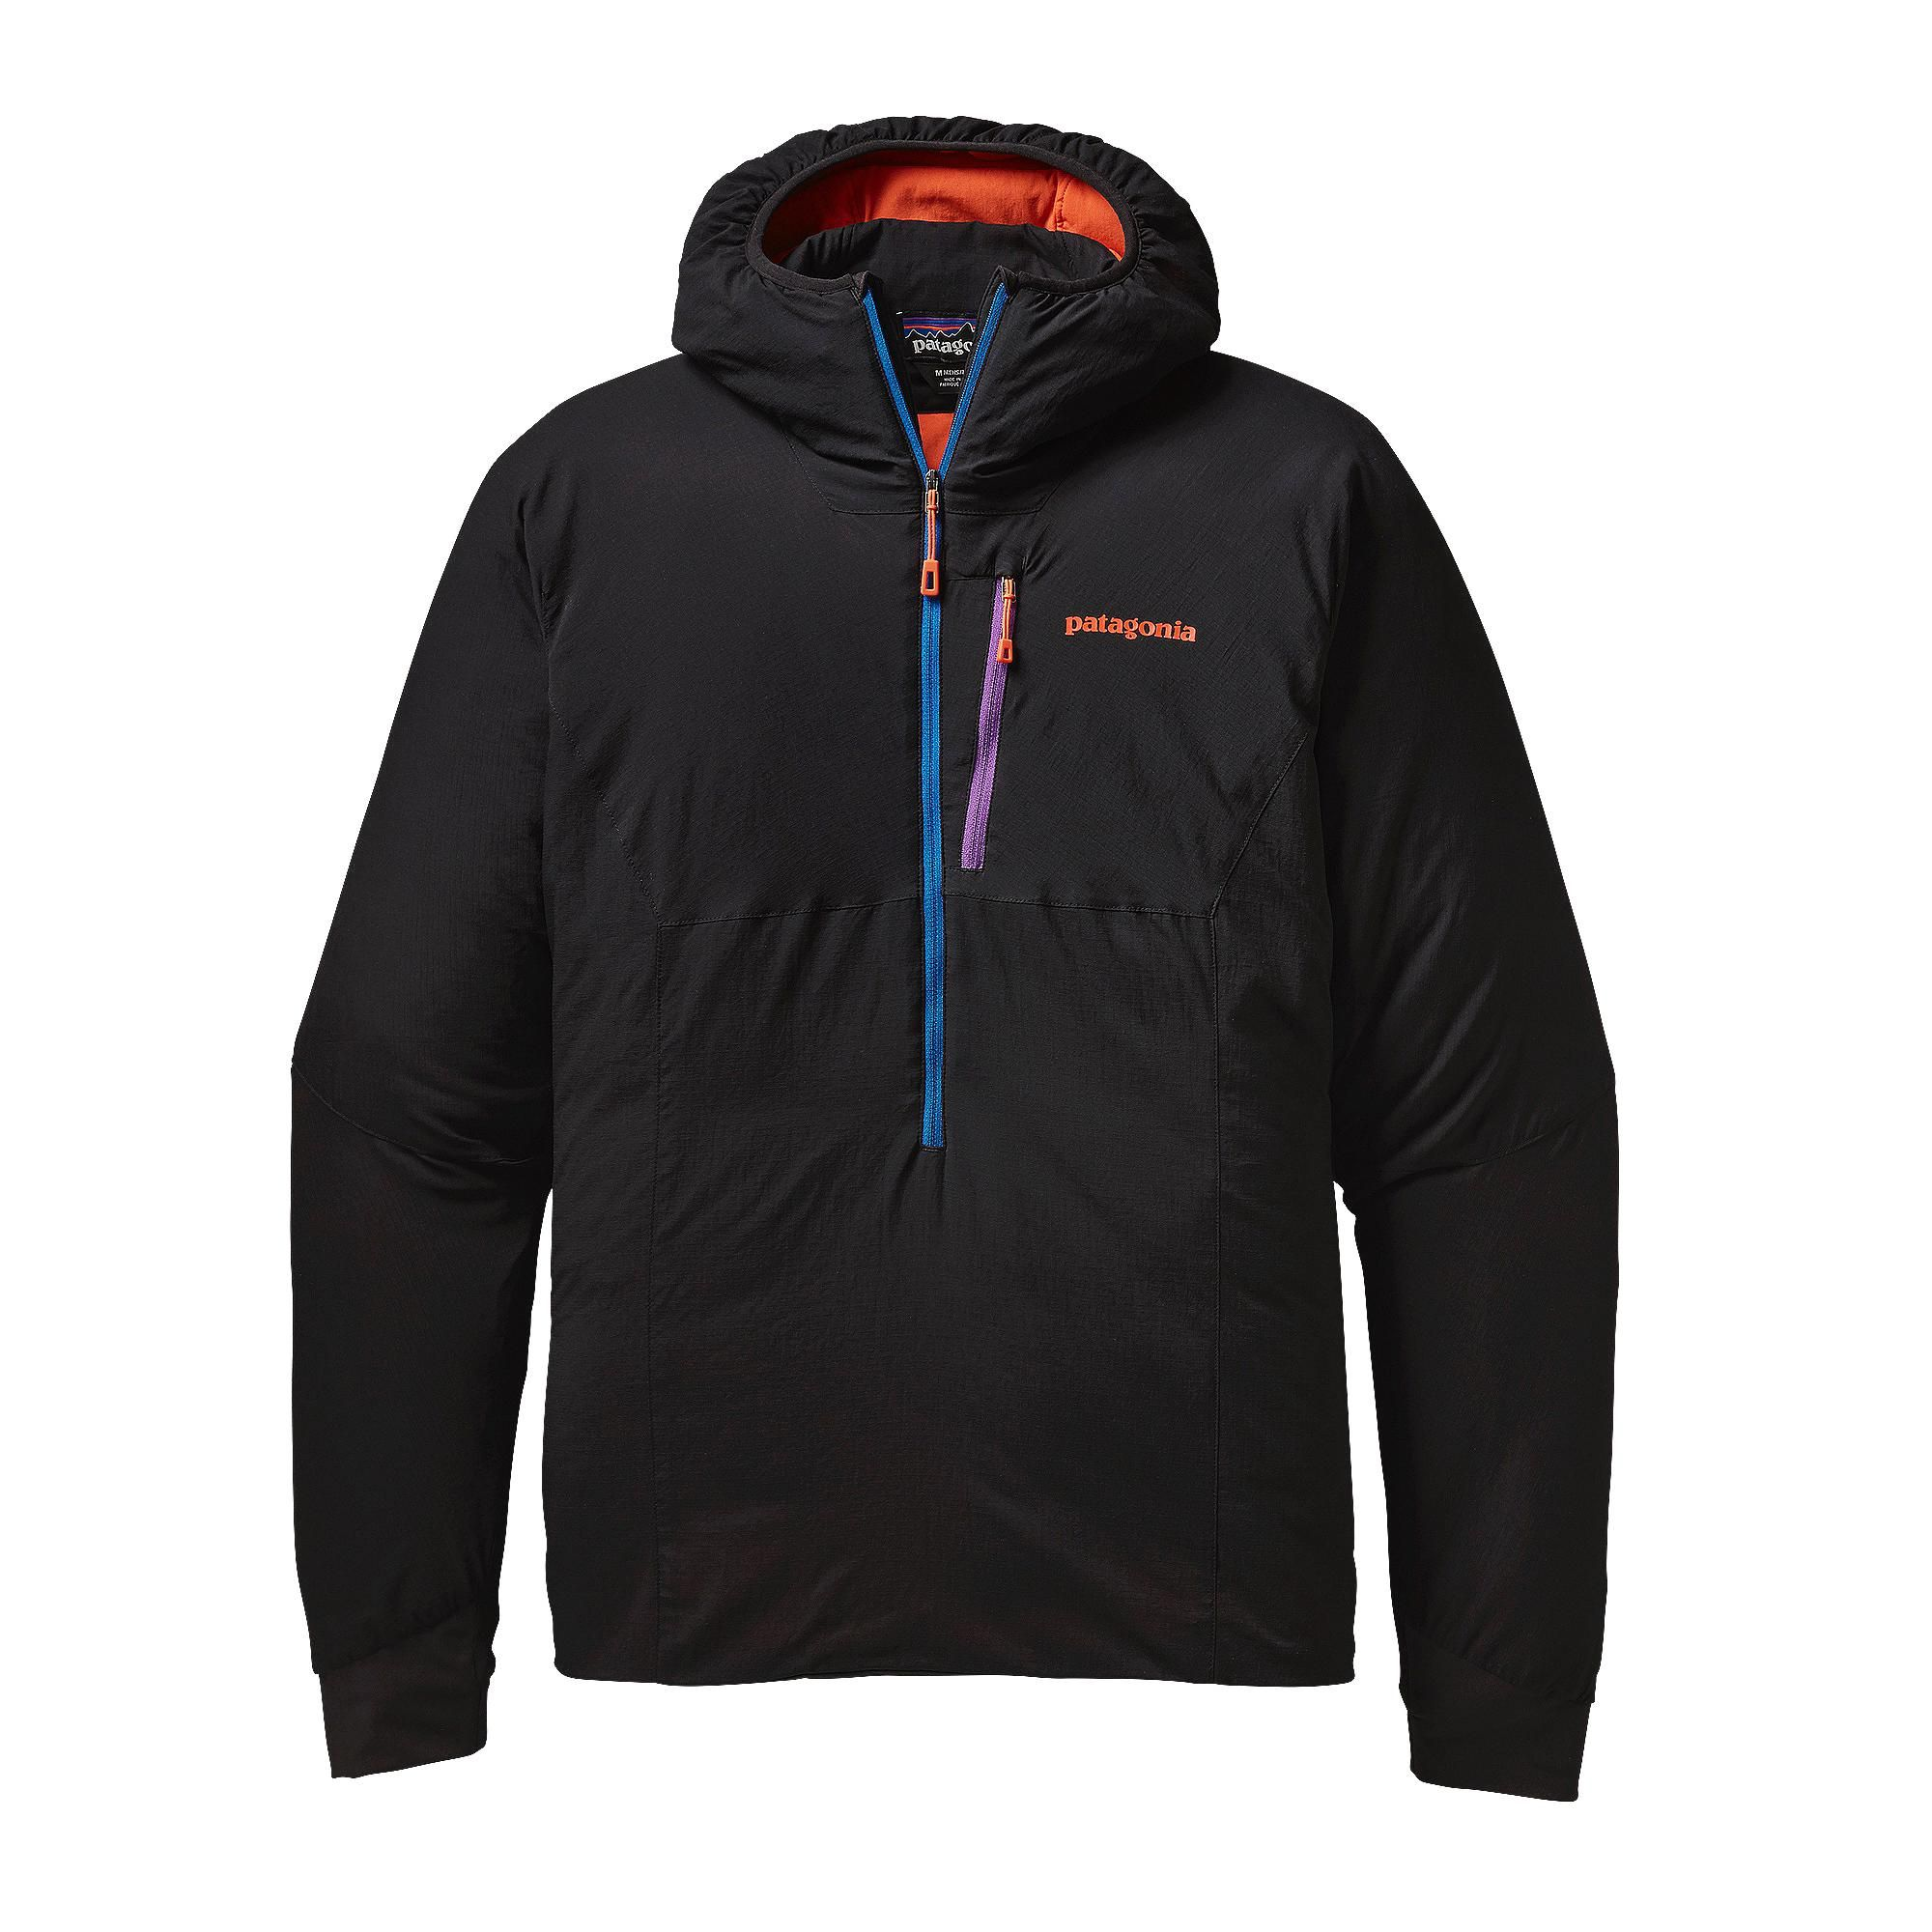 Patagonia Men's NanoAir® Light Hoody Black Mens